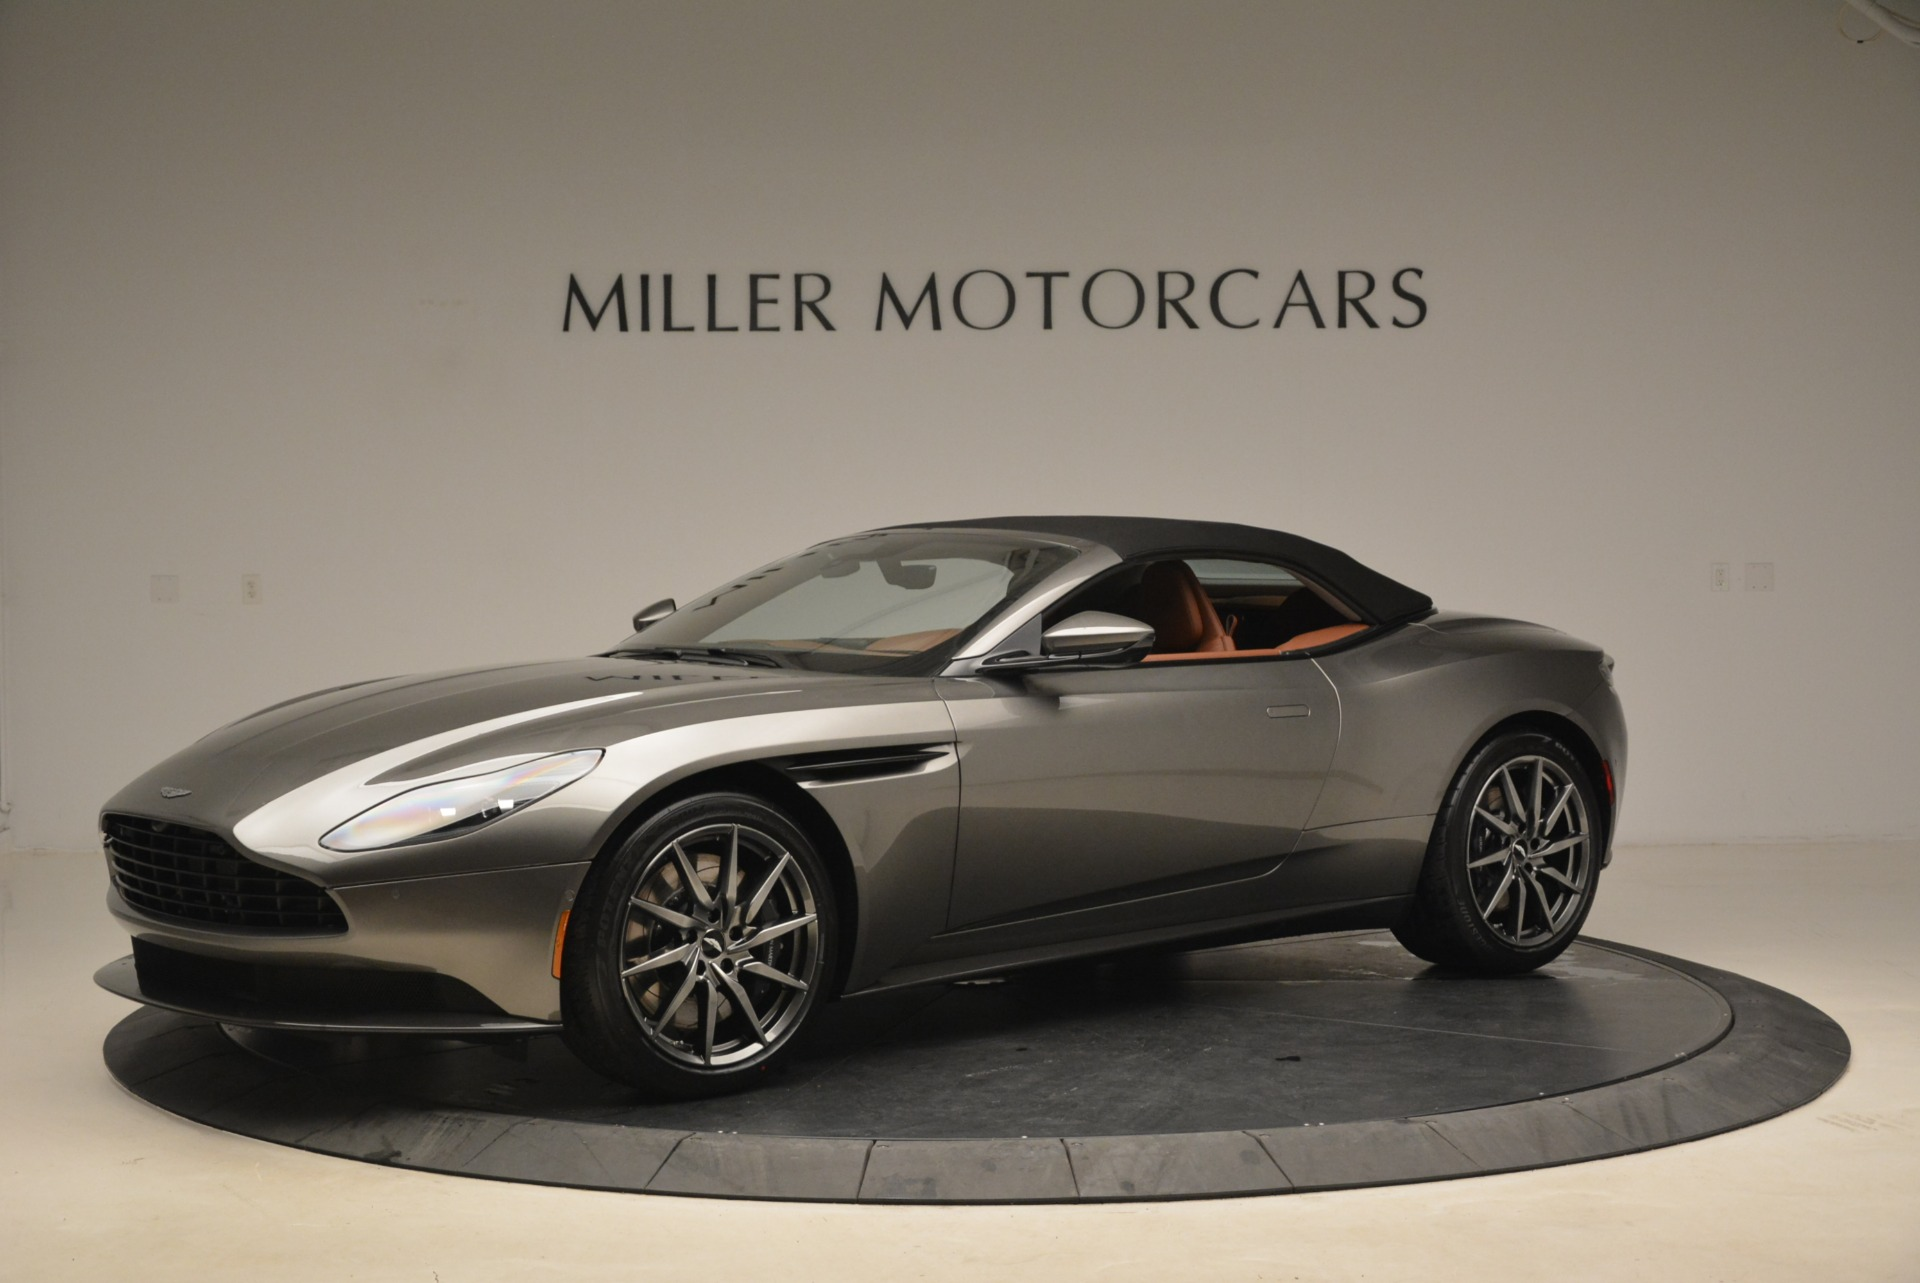 New 2019 Aston Martin DB11 Volante  For Sale In Greenwich, CT. Alfa Romeo of Greenwich, A1284 2209_p14